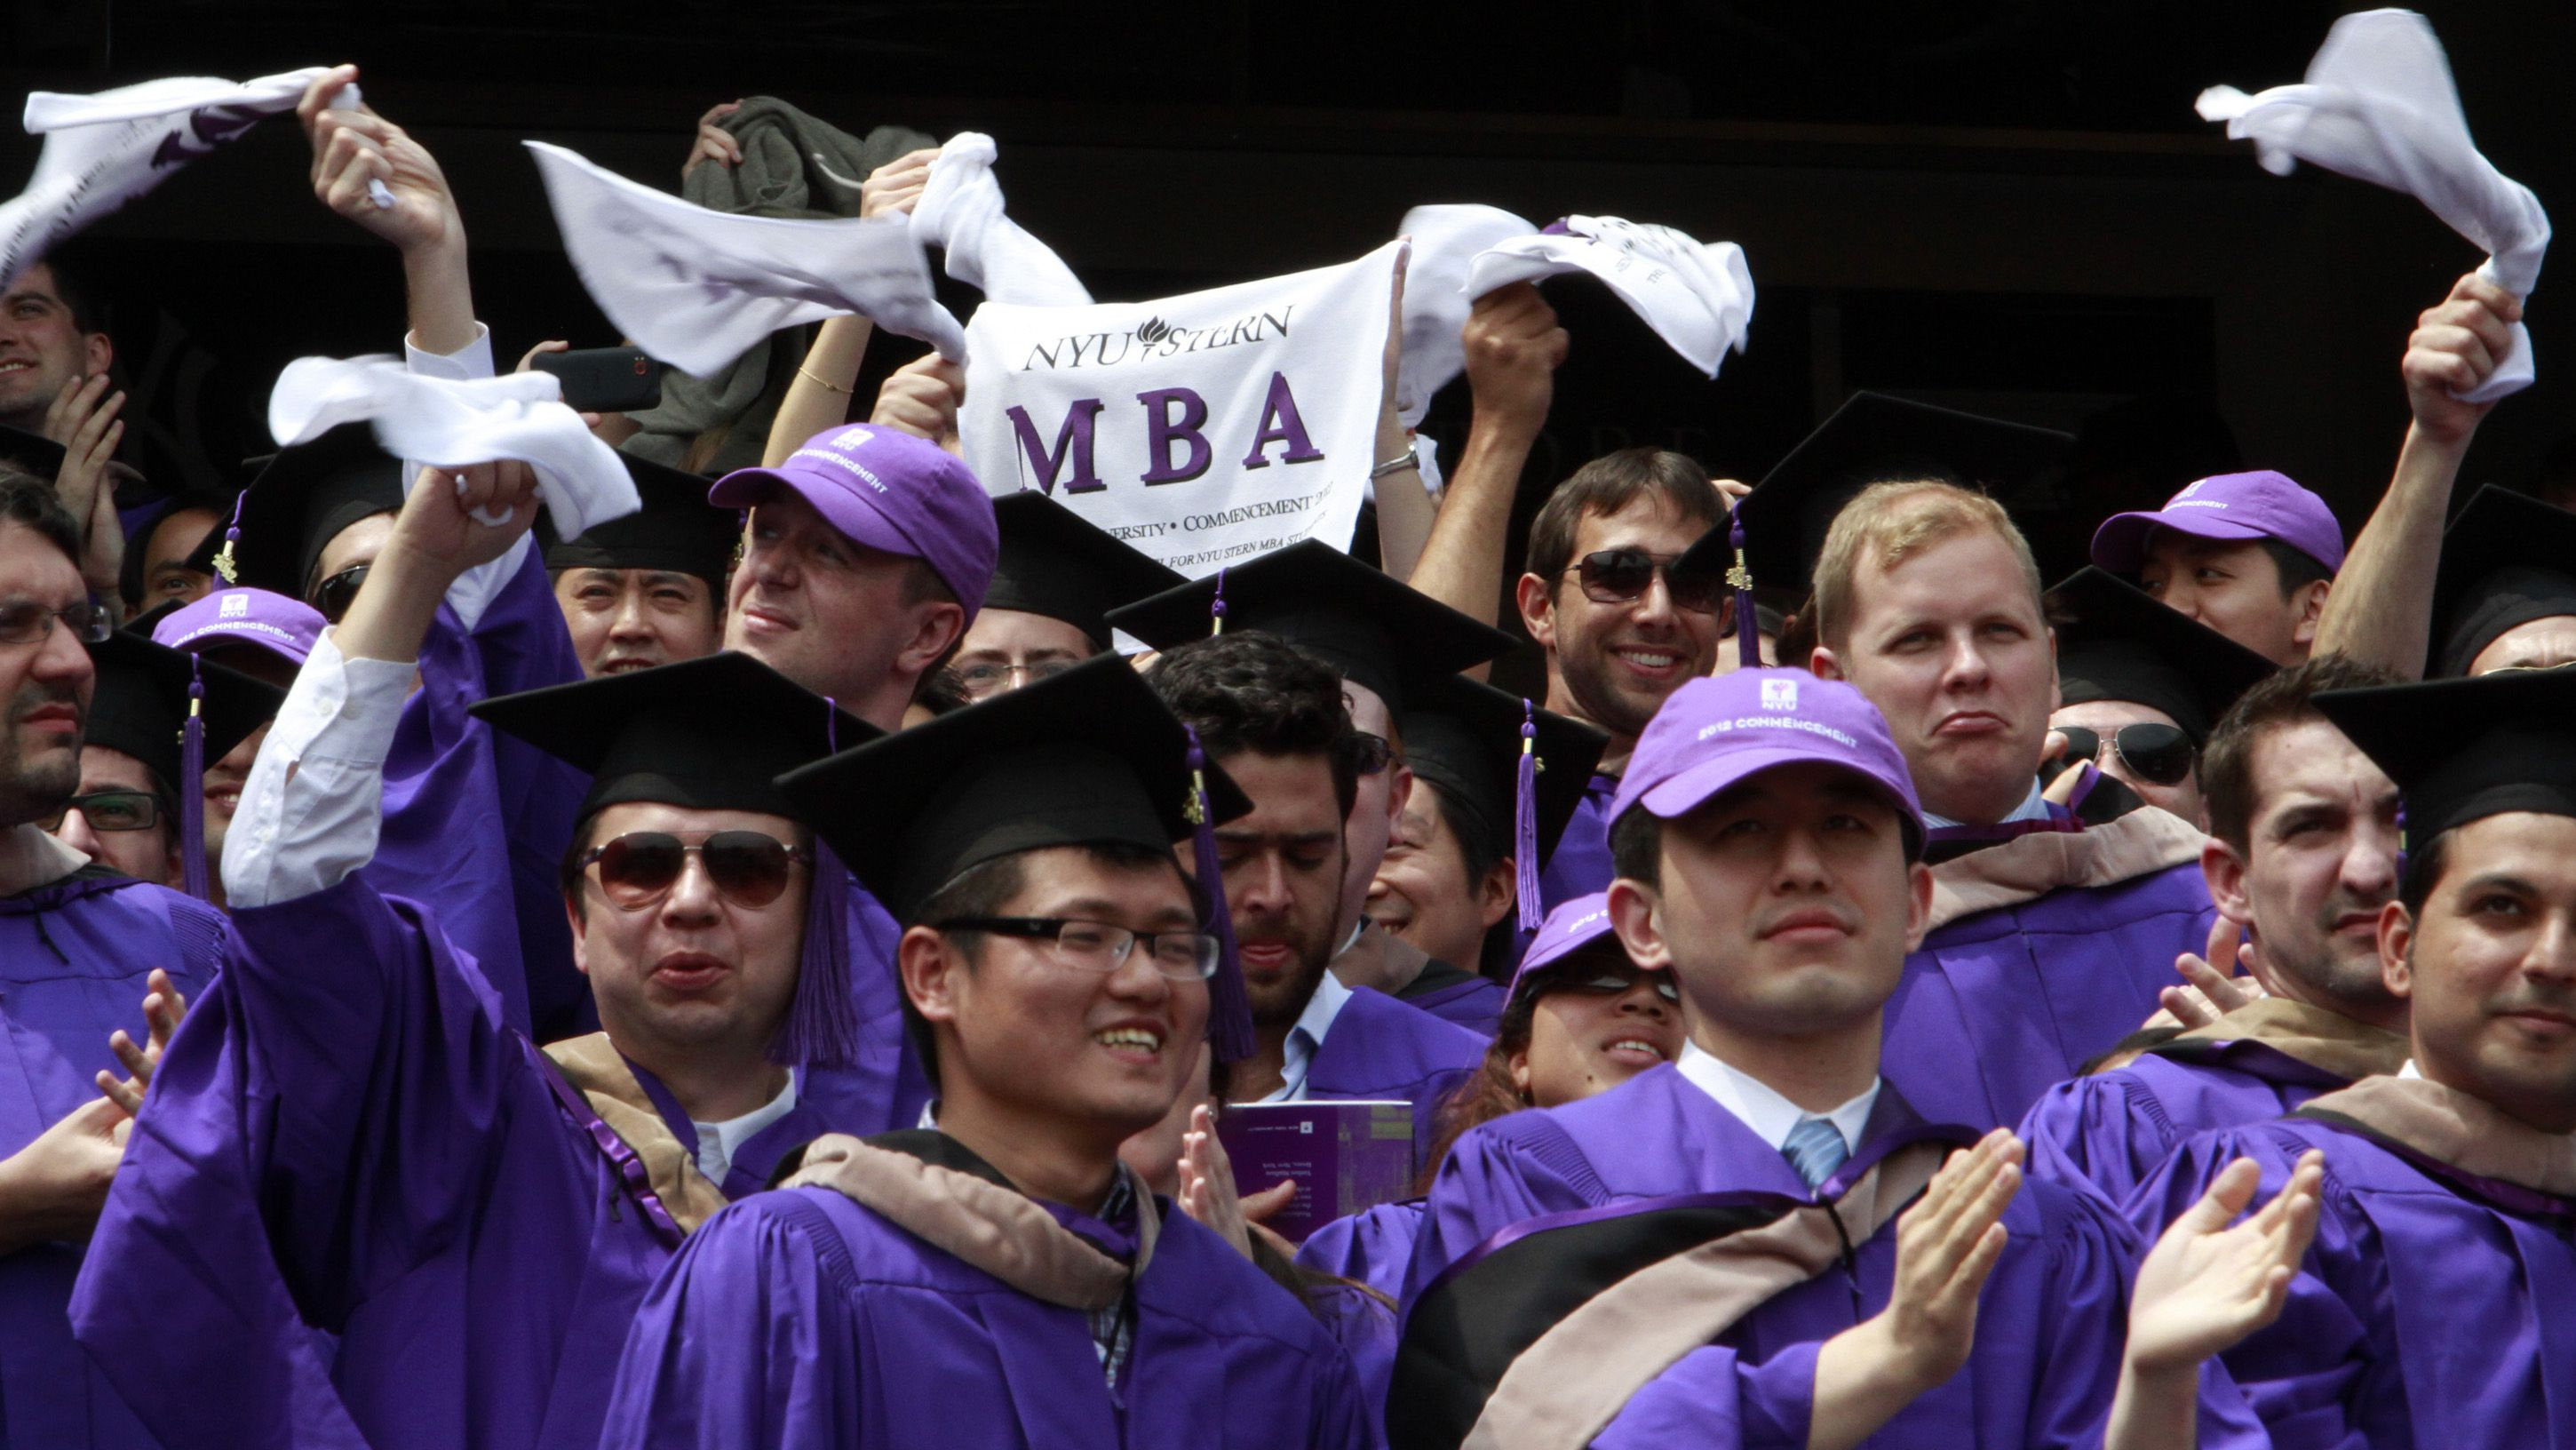 "Graduates from the Leonard N. Stern School of Business cheer and wave ""MBA"" towels as they are declared degree candidates, during the New York University 180th commencement ceremony at Yankee Stadium on Wednesday, May 16, 2012 in New York.  (AP Photo/Bebeto Matthews)"